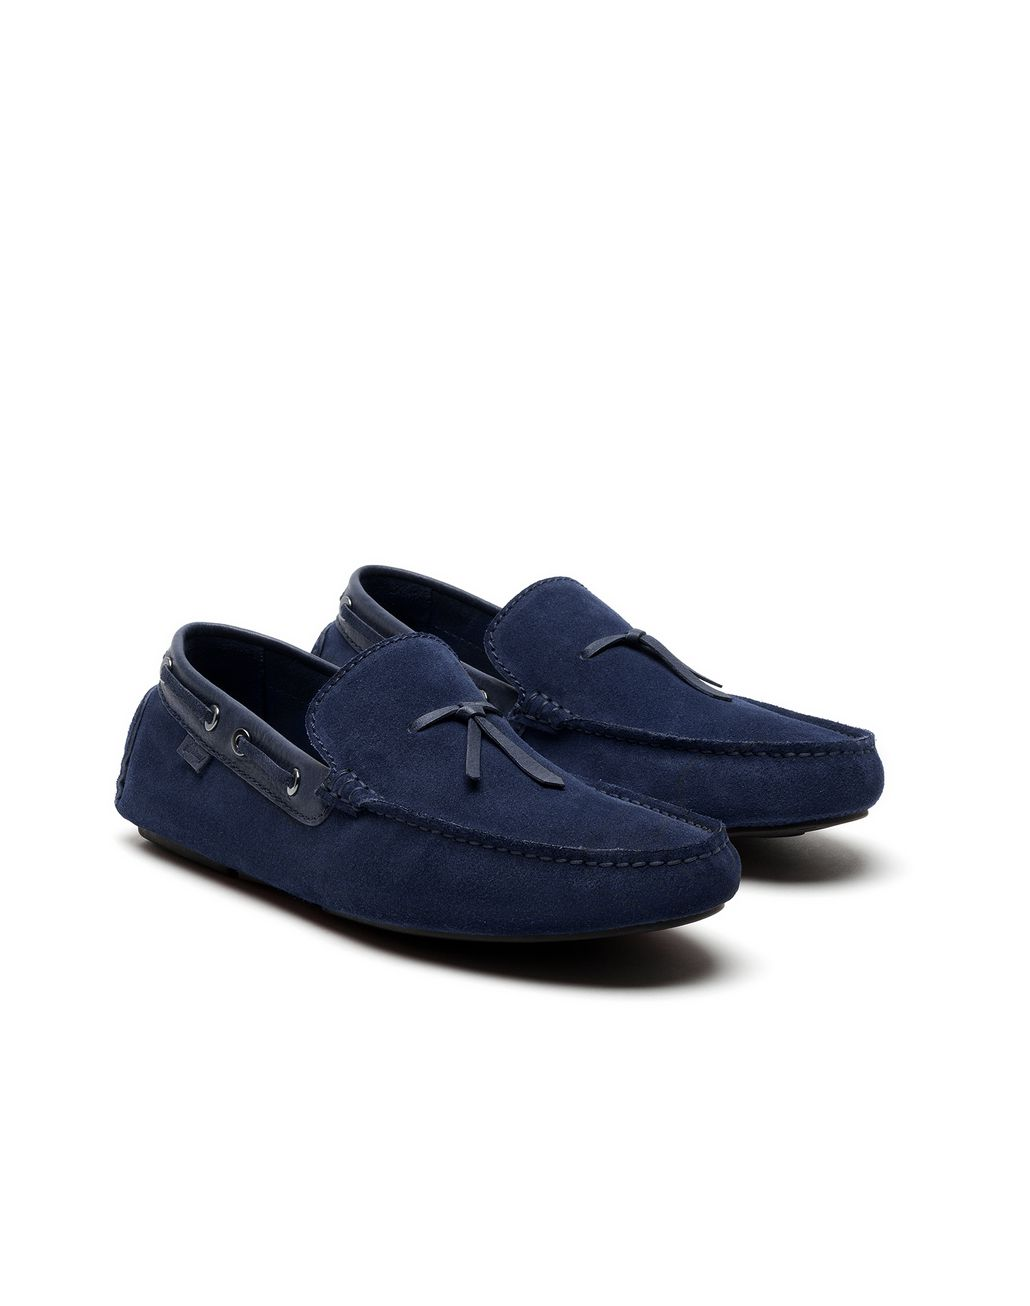 BRIONI Navy-Blue Unlined Calf Suede Loafer Loafers U d